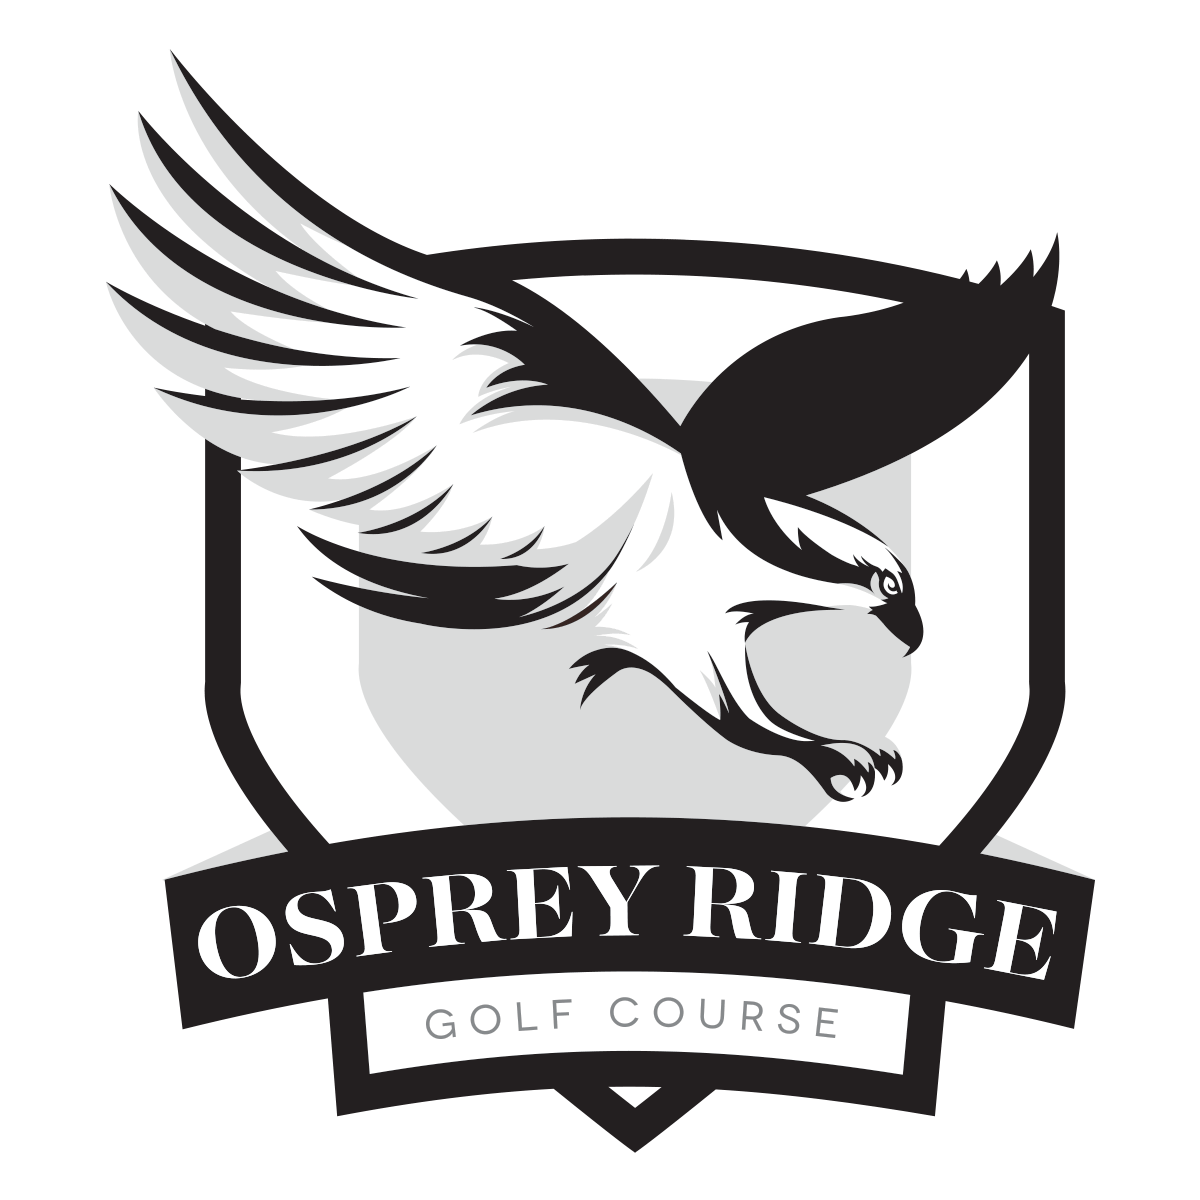 Osprey Ridge